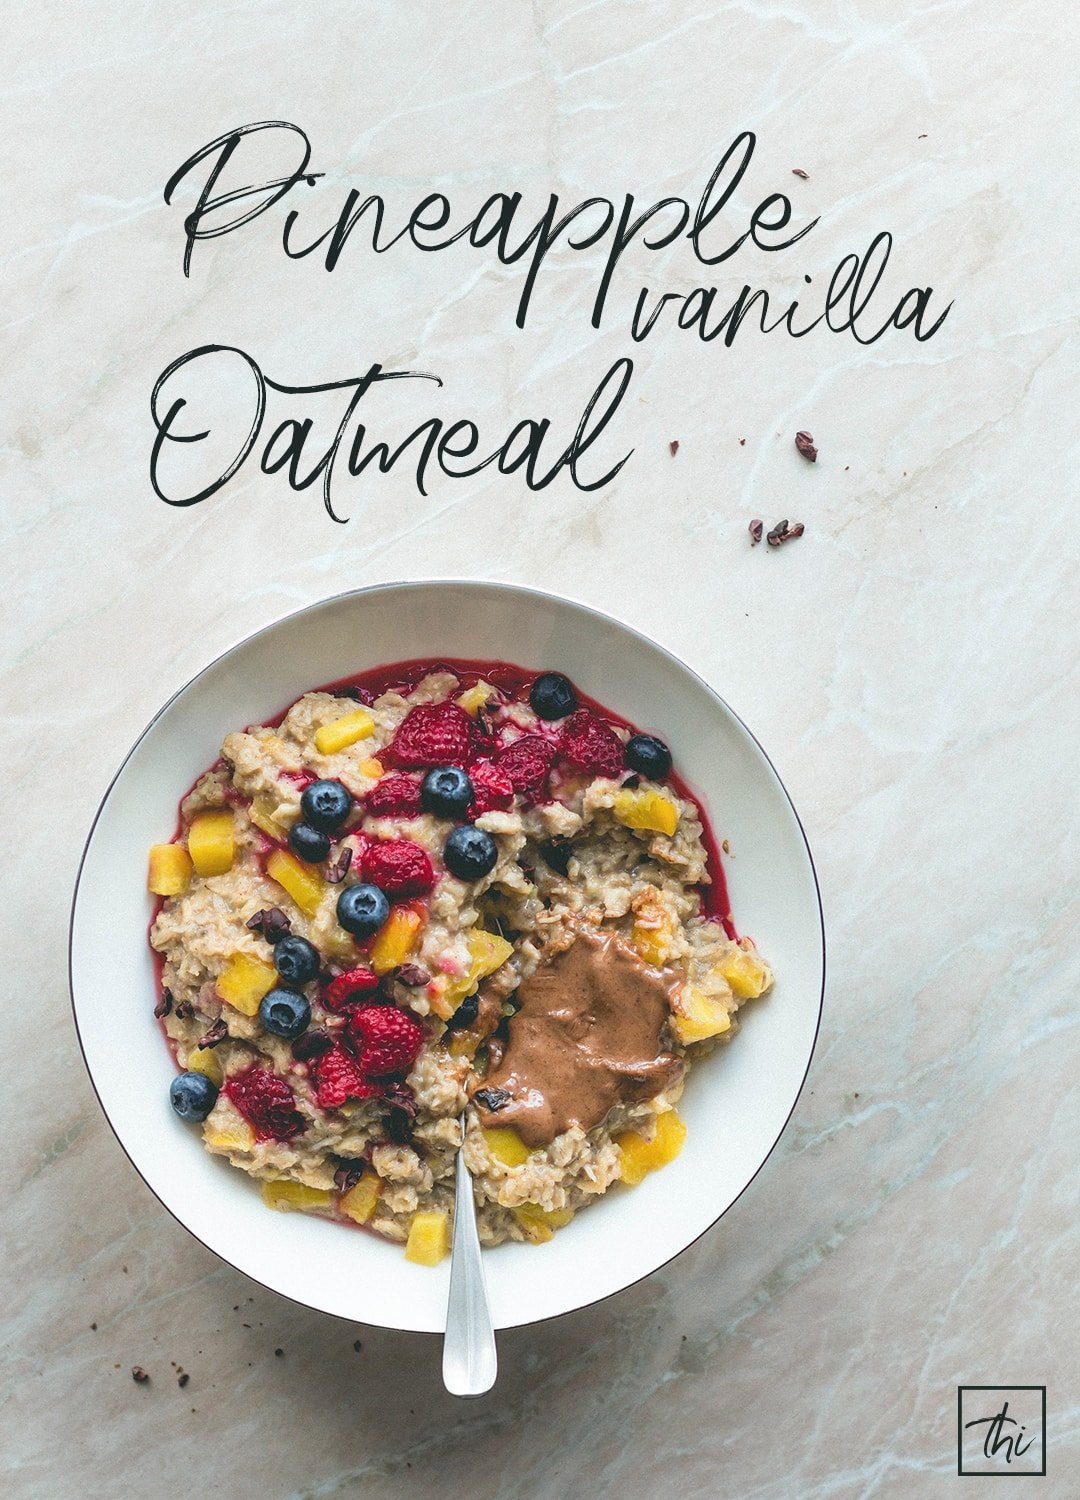 Pineapple Vanilla Oatmeal (vegan, gluten-free) - the most delicious breakfast! This pina colada oatmeal is really easy to make and super delicious! Pineapple, oats, almond milk, and vanilla. You'll love this recipe! | thehealthfulideas.com